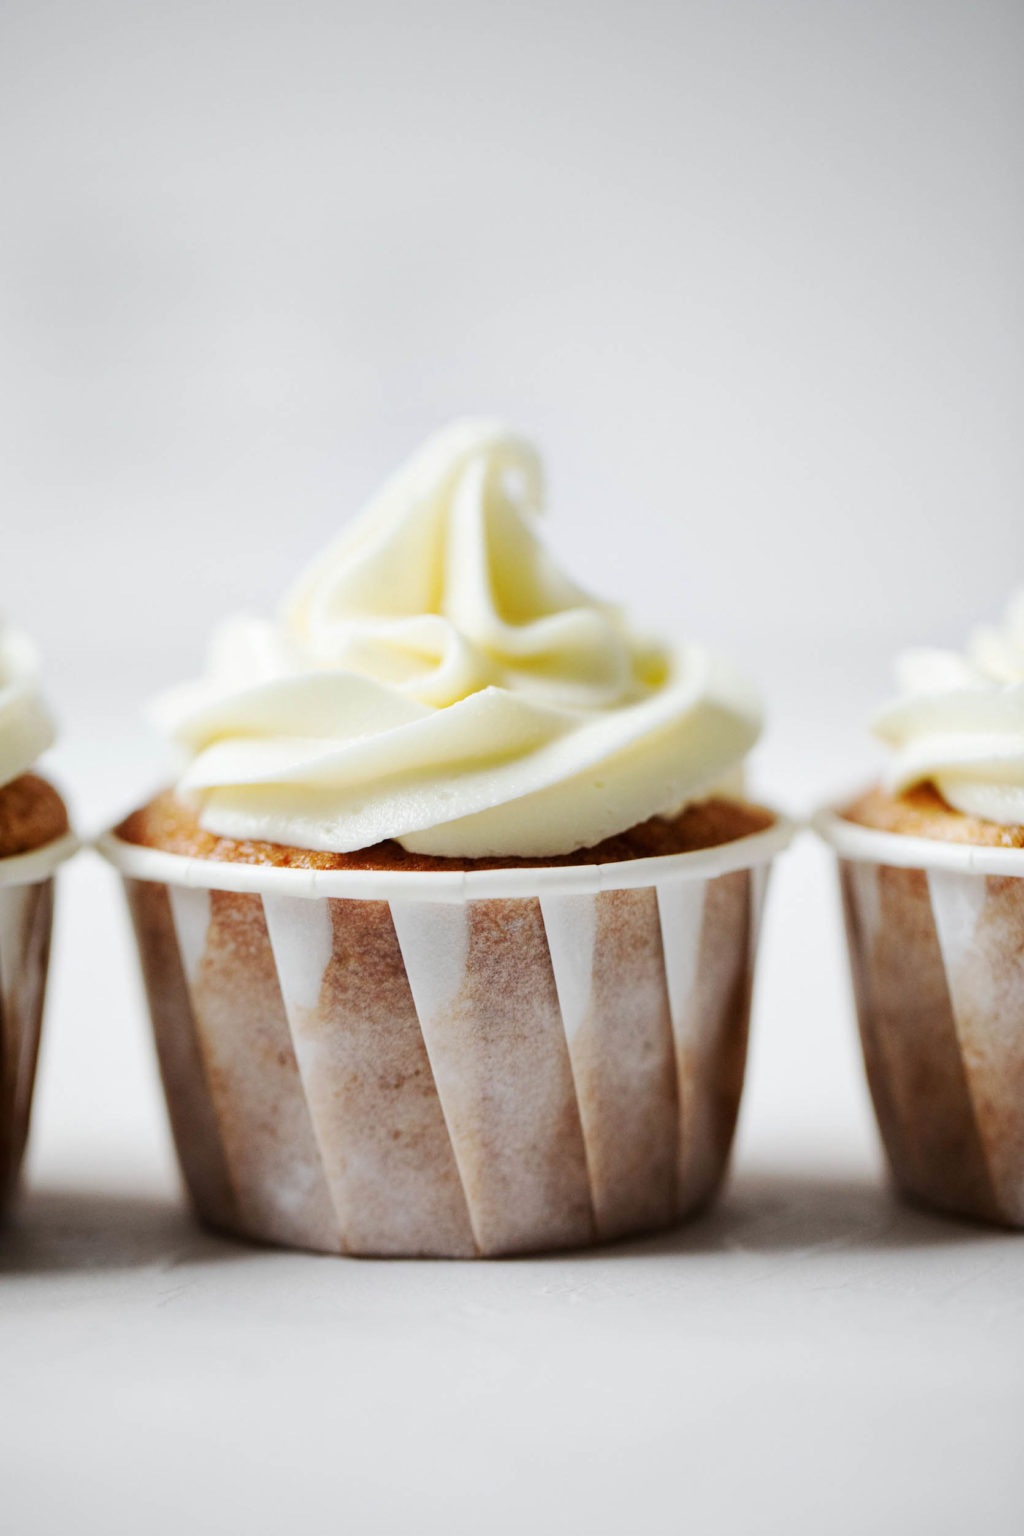 Plant based cider cupcakes with cream cheese frosting, lined up in a neat row.